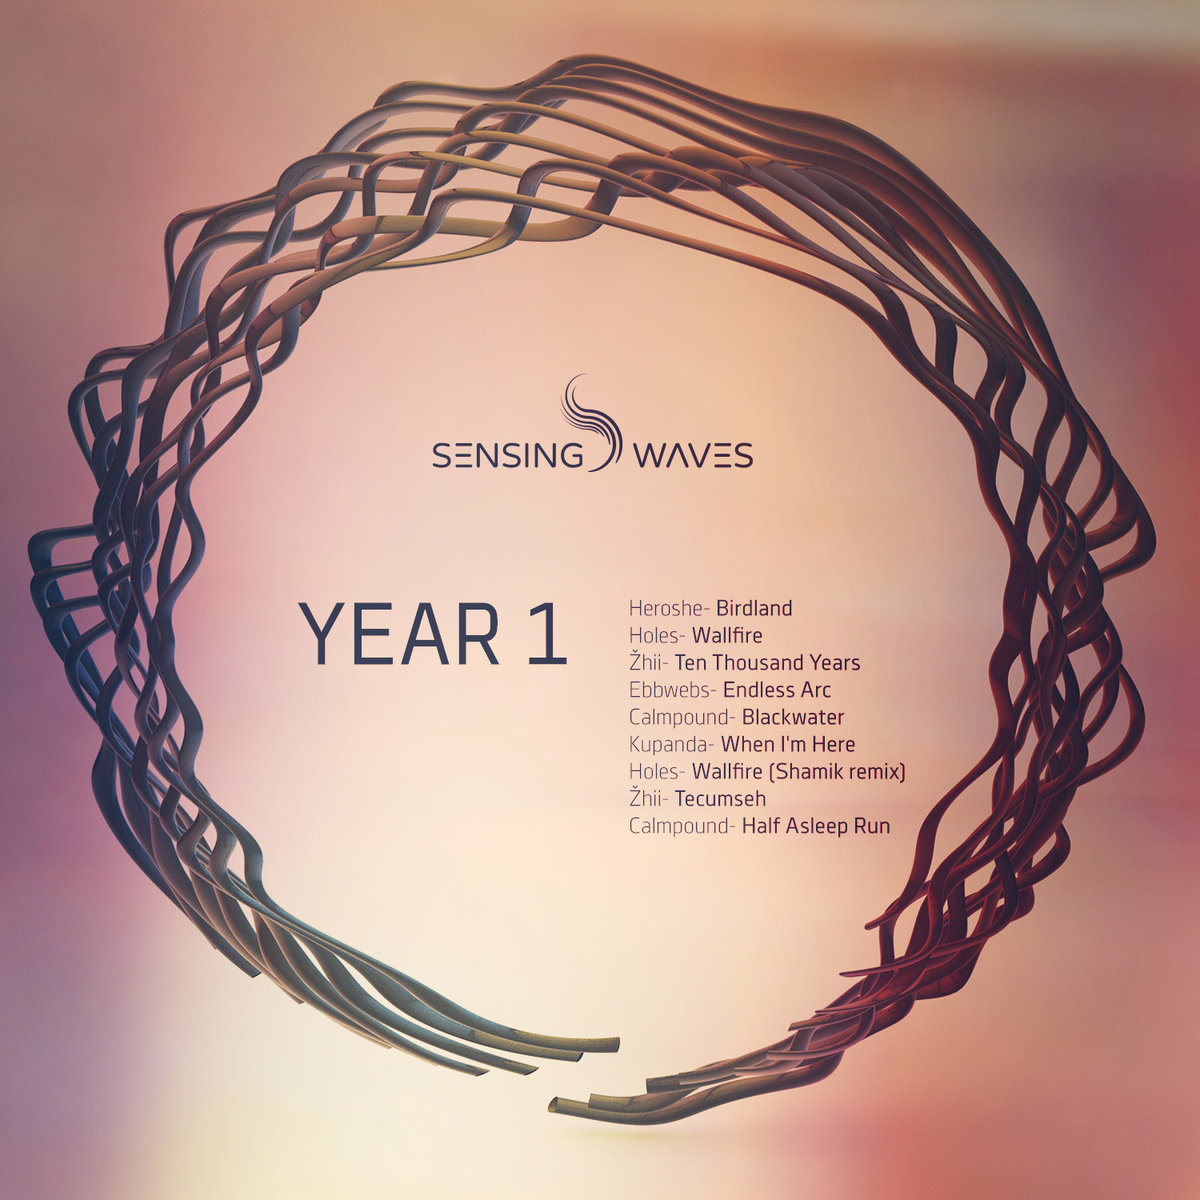 As a thank you for your support, here is our free compilation.  Big love to all the artists we have been fortunate to work with this past year.